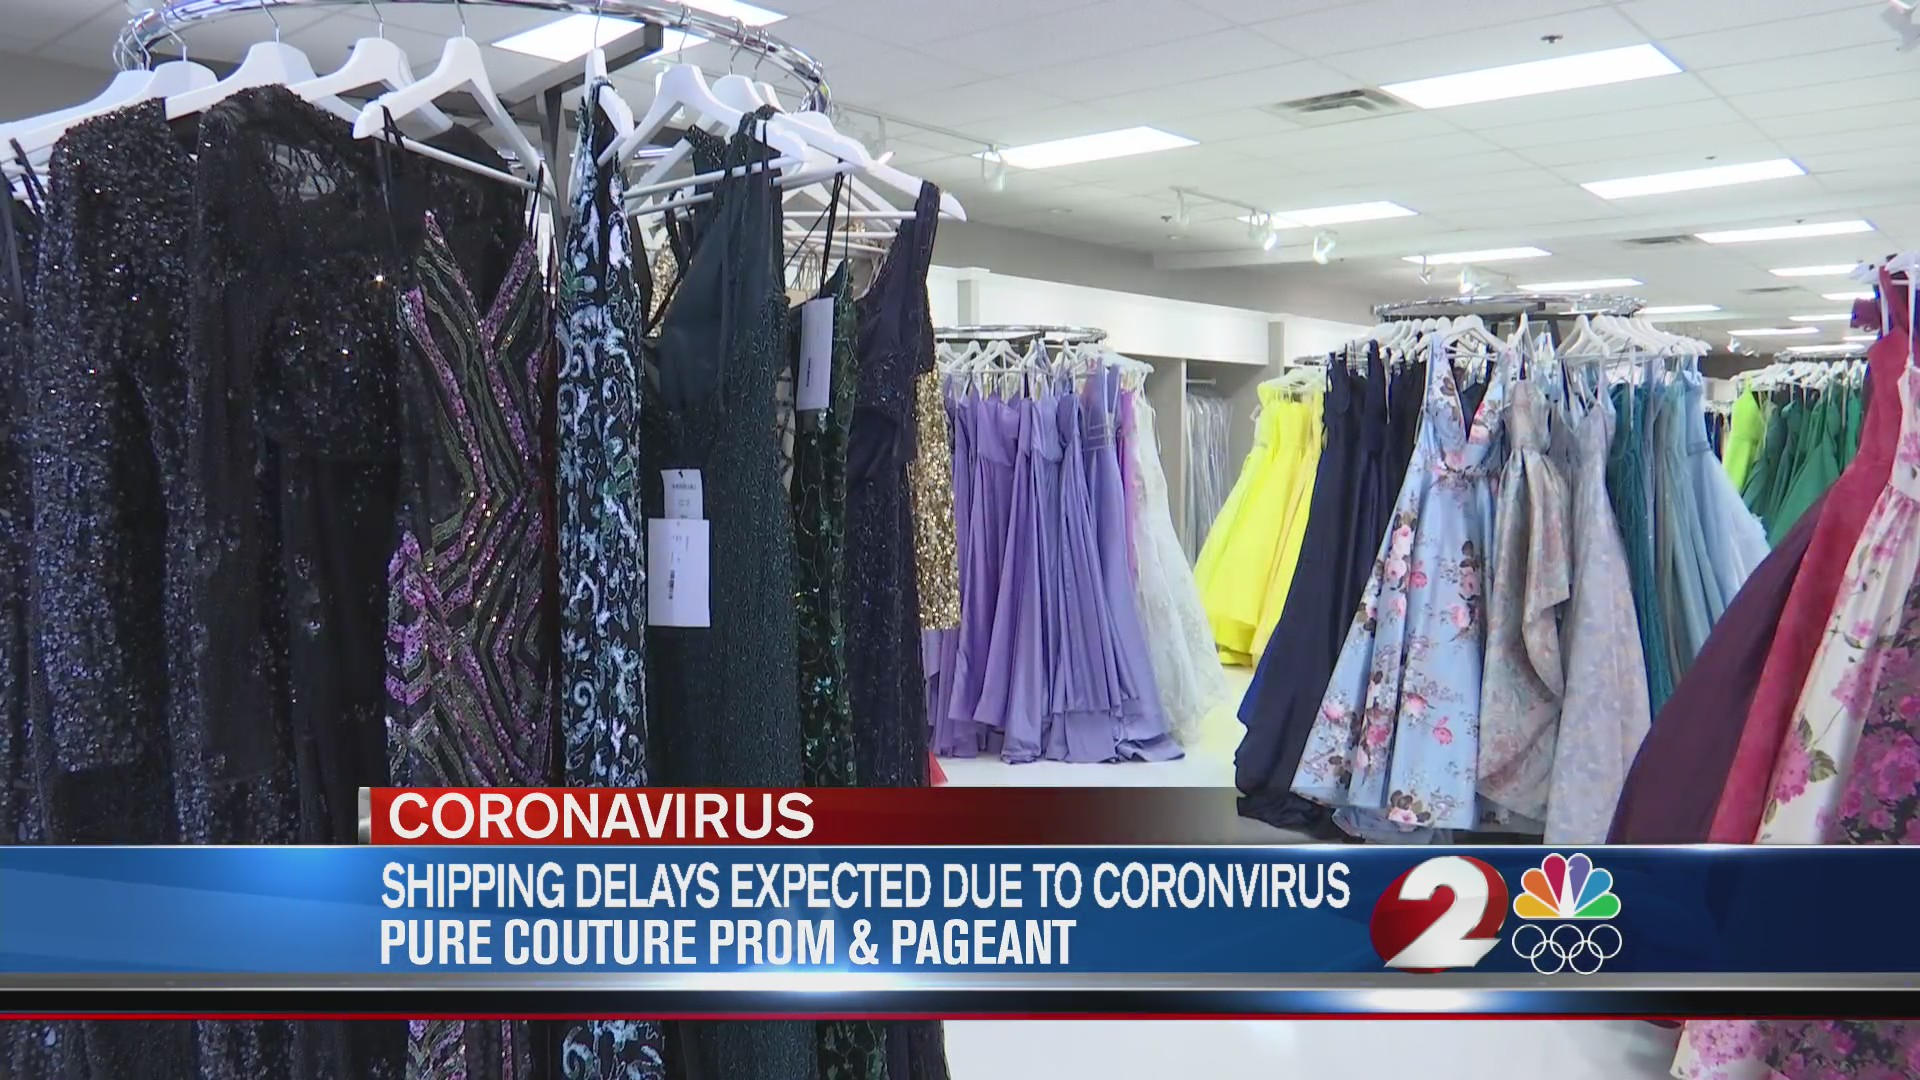 Shipping delays expected due to coronavirus